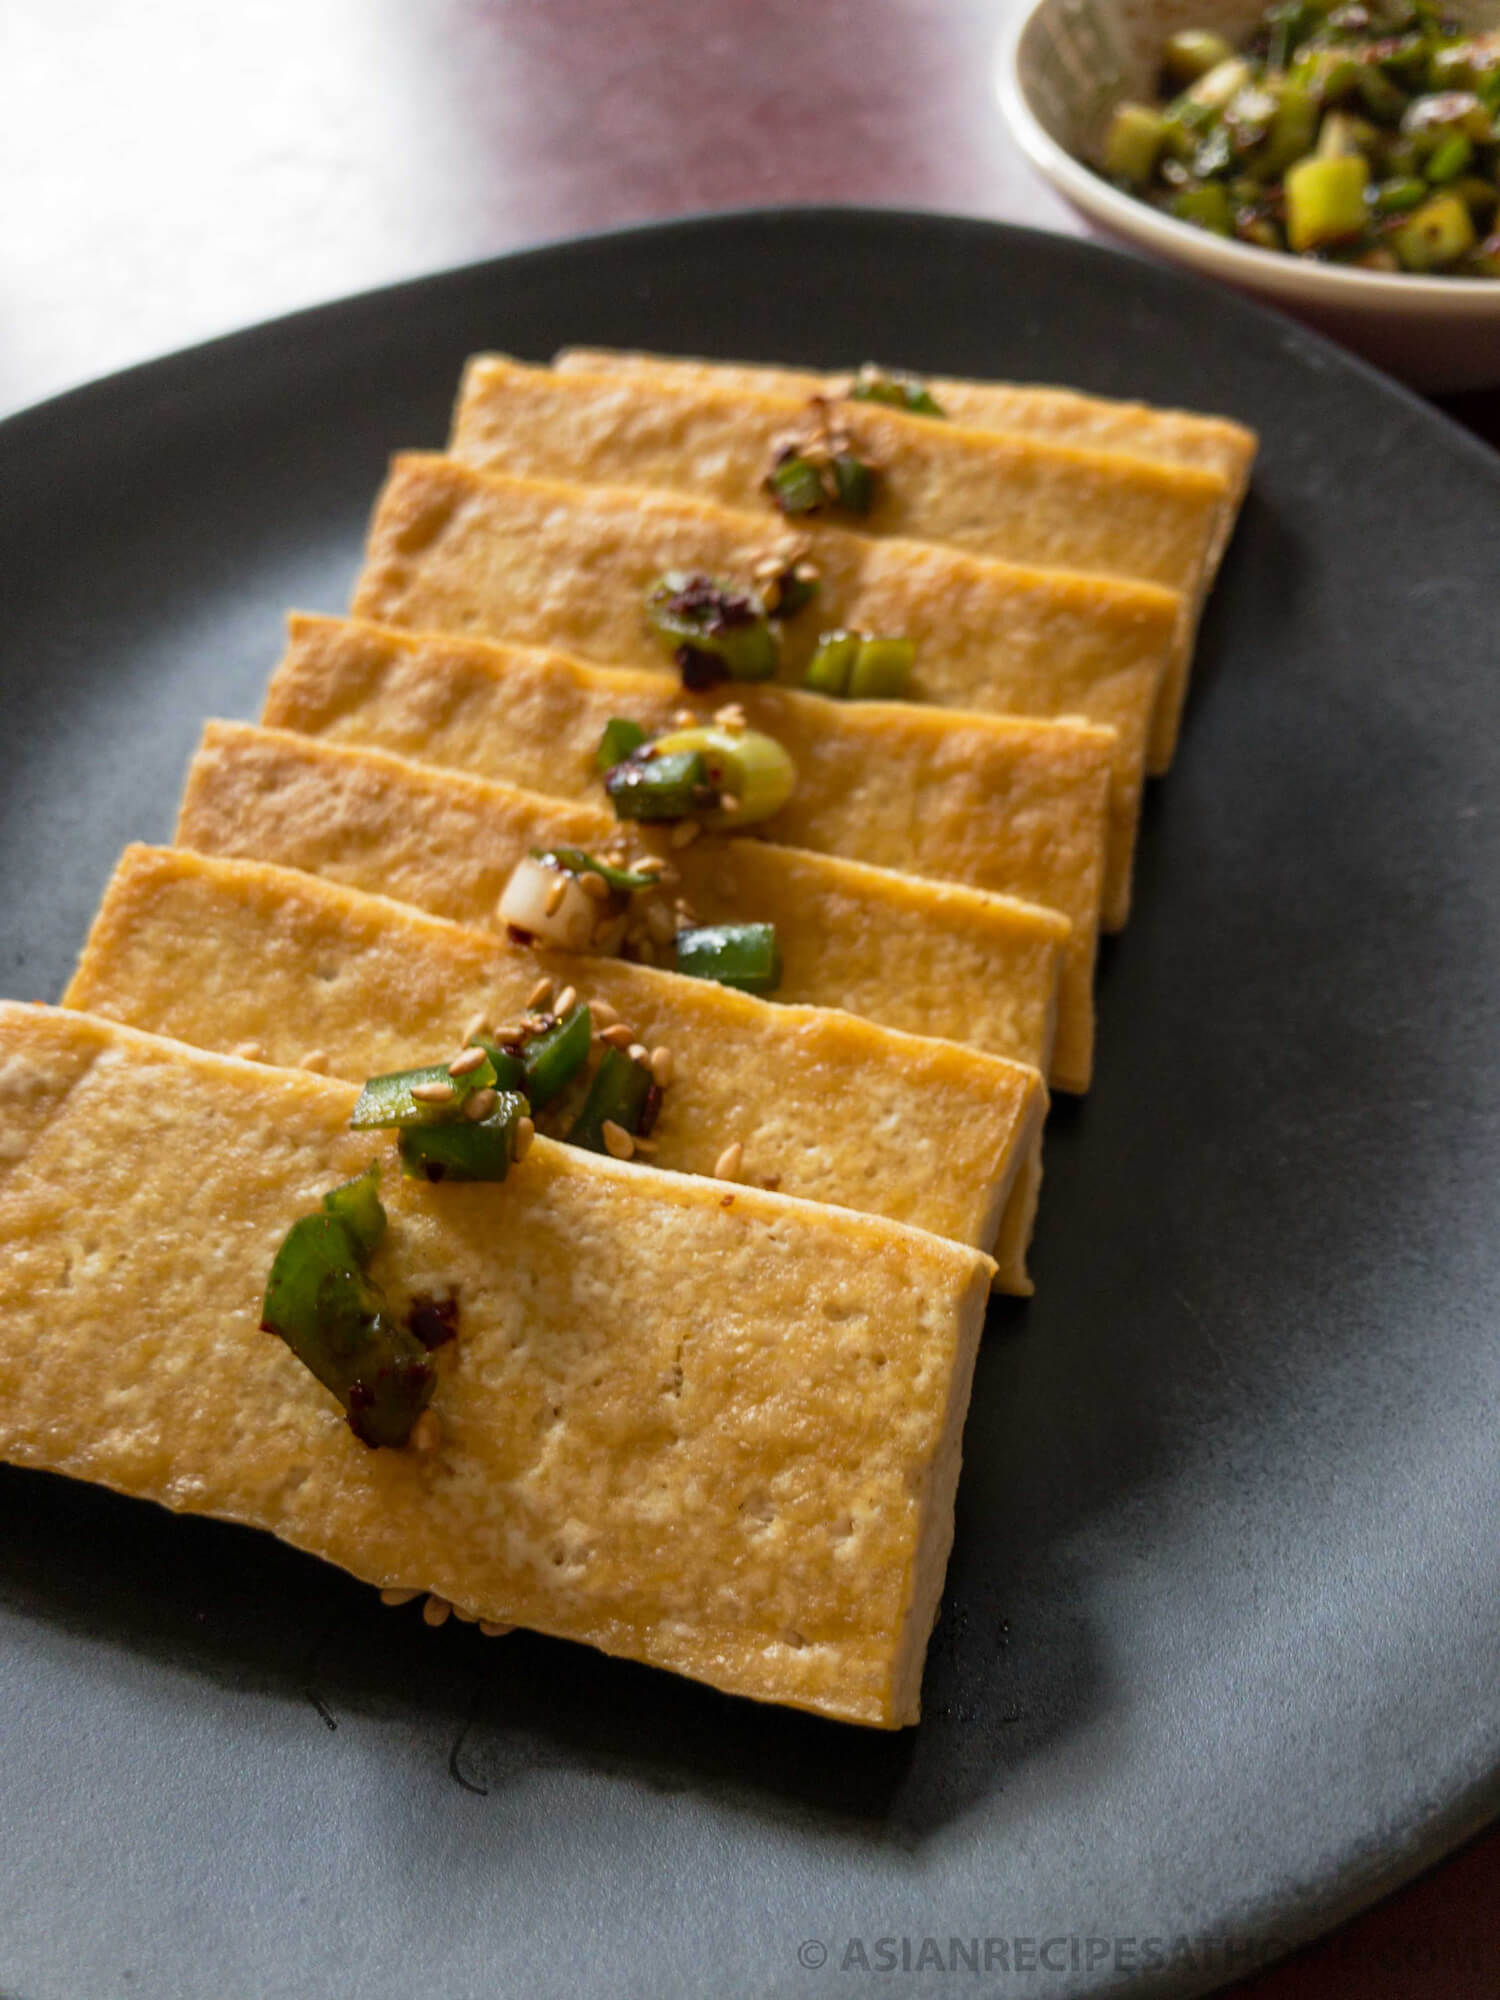 Pan-fried tofu with our Asian-style Jalapeno Green Onion sauce